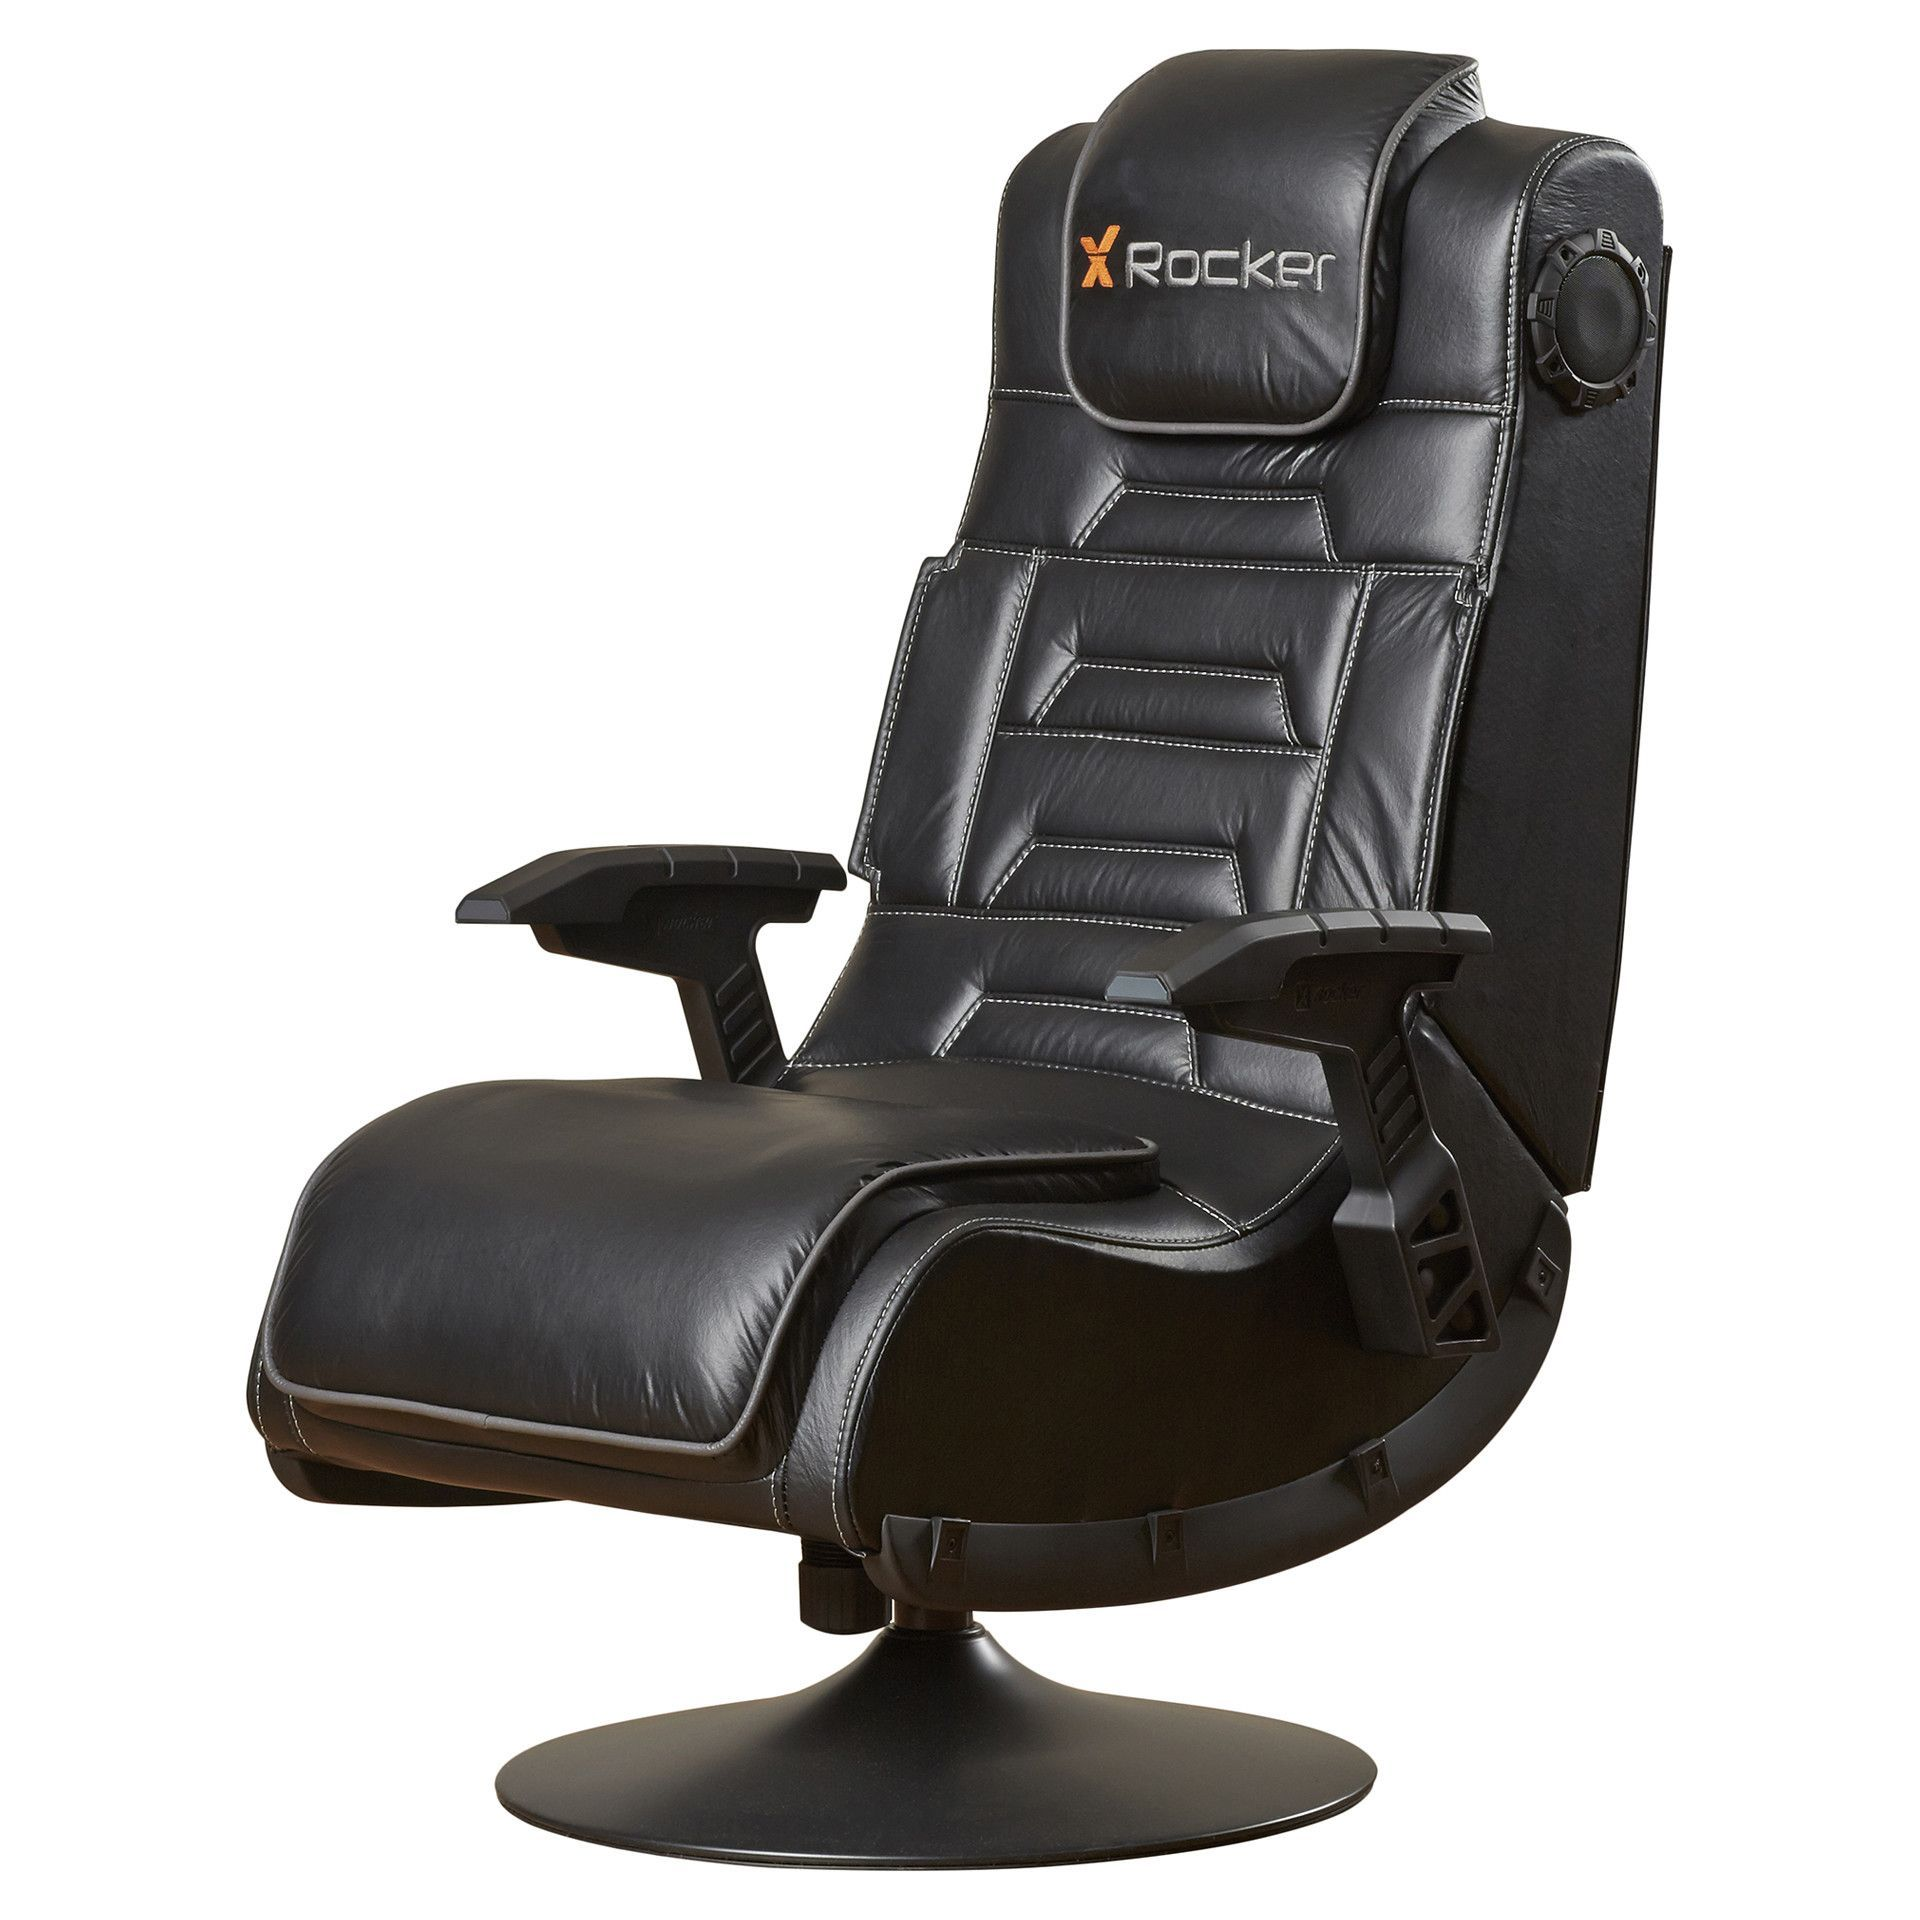 Do you know the best 5 Best fy gaming chair in 2017 we have collected the best video gaming chair for you check out the list